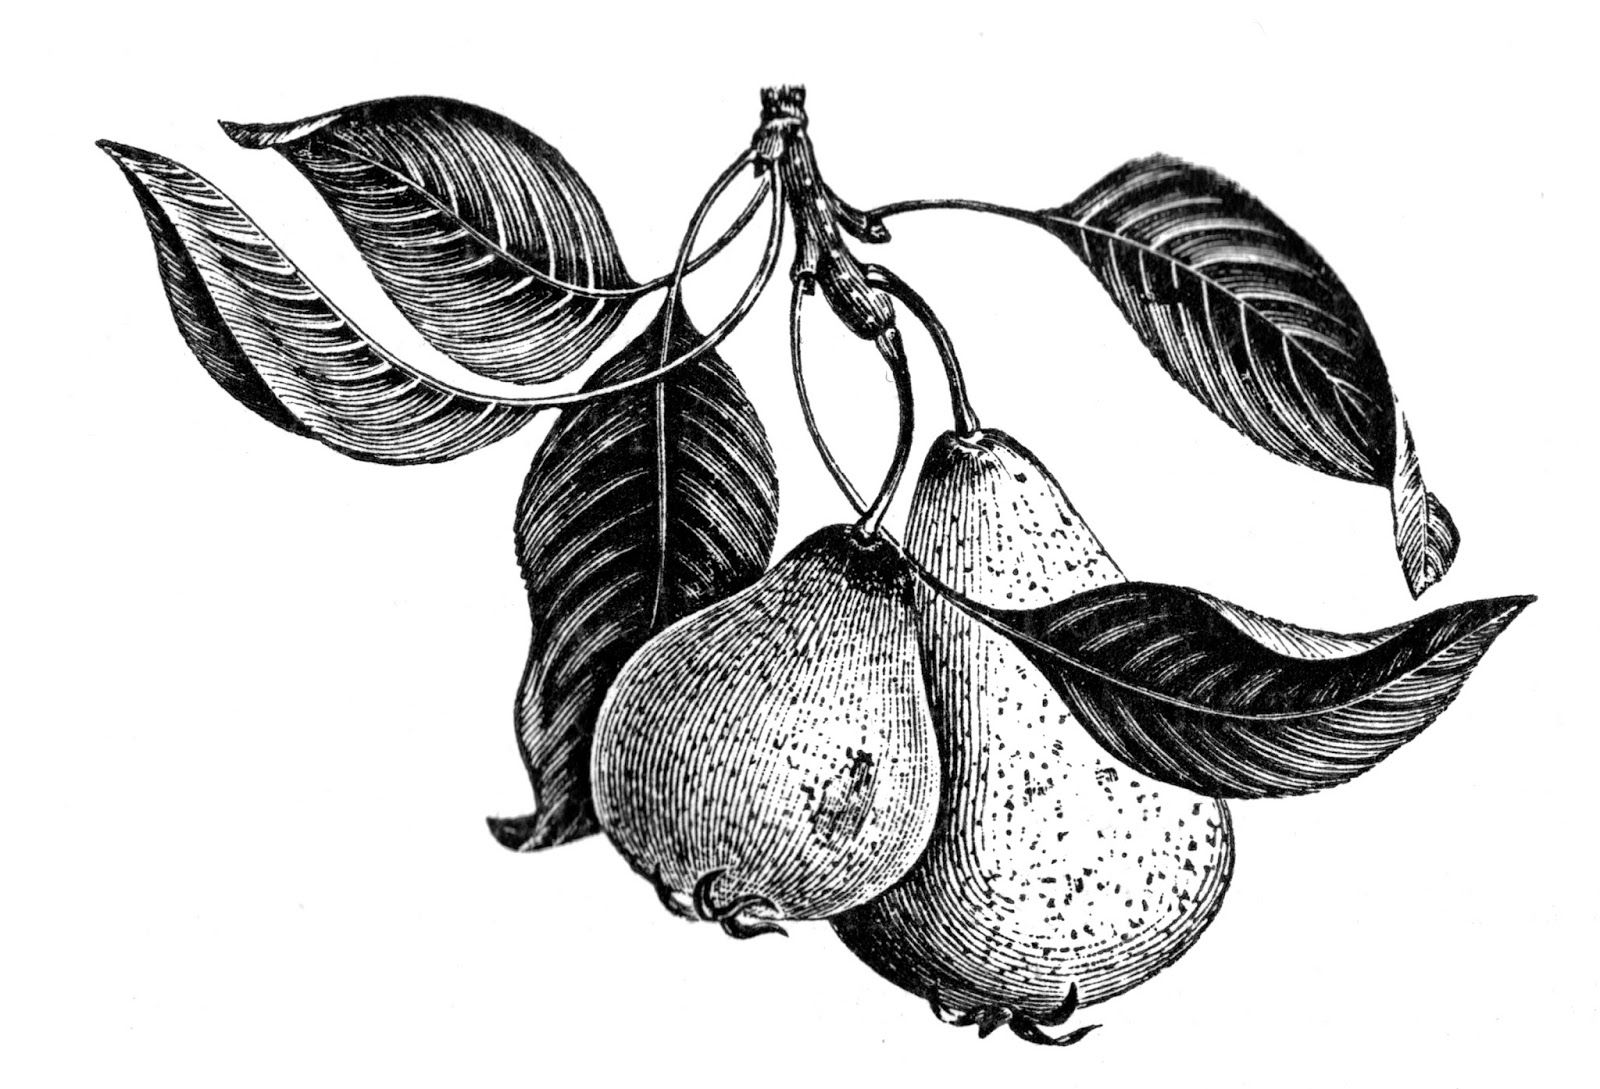 Vintage Pear 'Beurre Giffard' Image (With Images